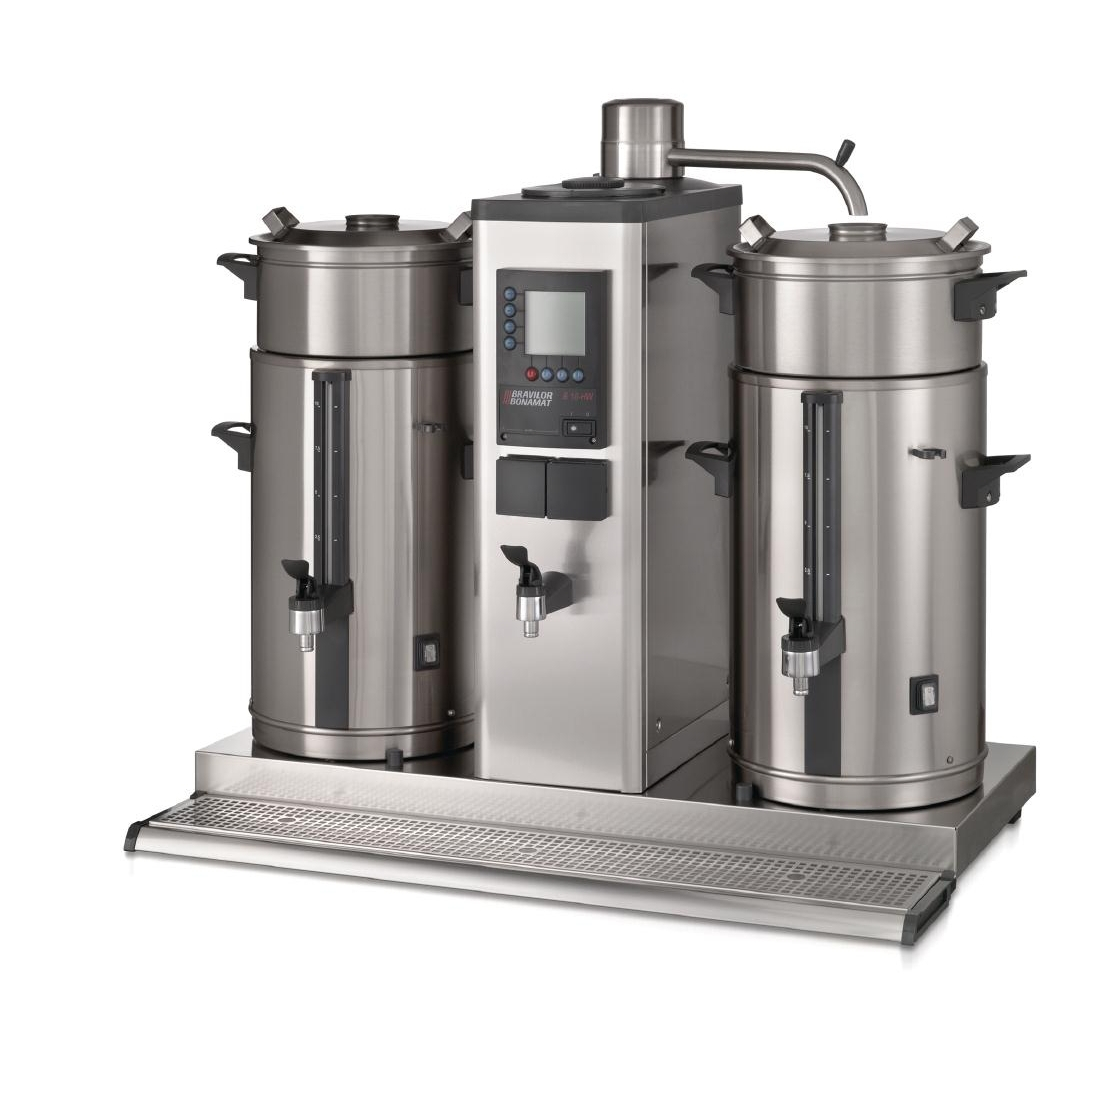 Bravilor B10 HW5 Bulk Coffee Brewer with 2x10Ltr Coffee Urns and Hot Water Tap 3 Phase